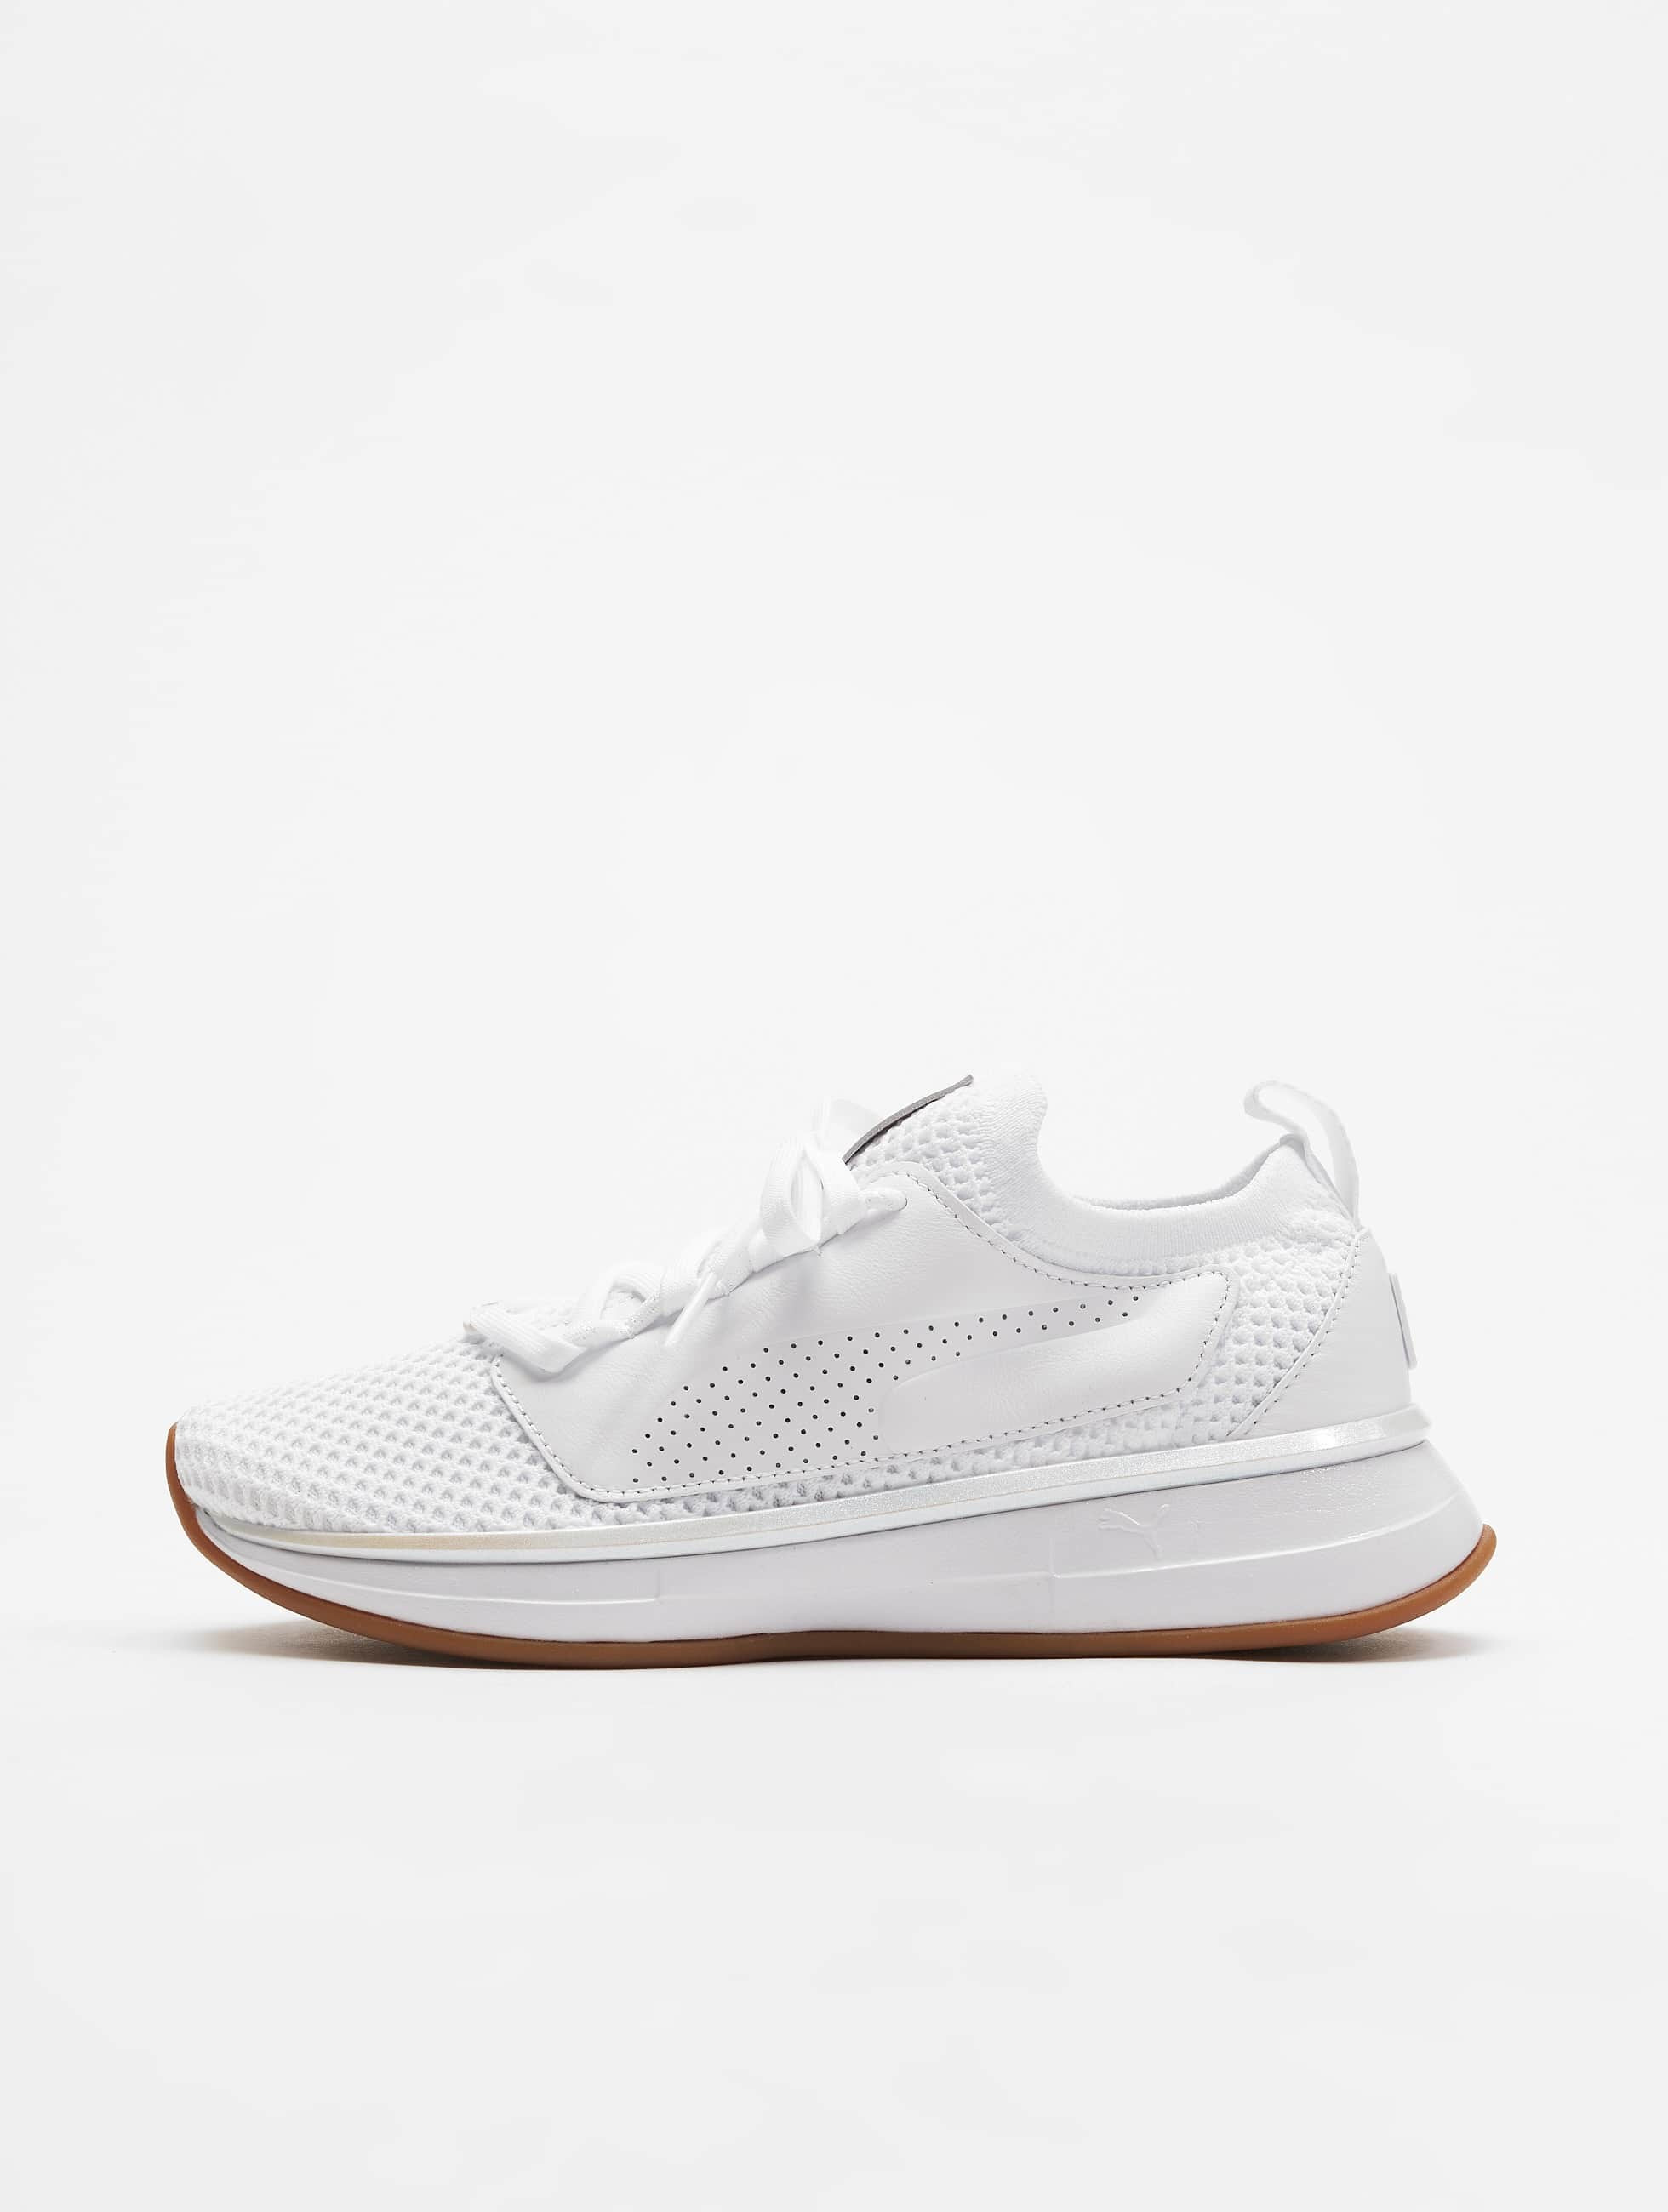 Puma SG Runner Sneakers Puma White